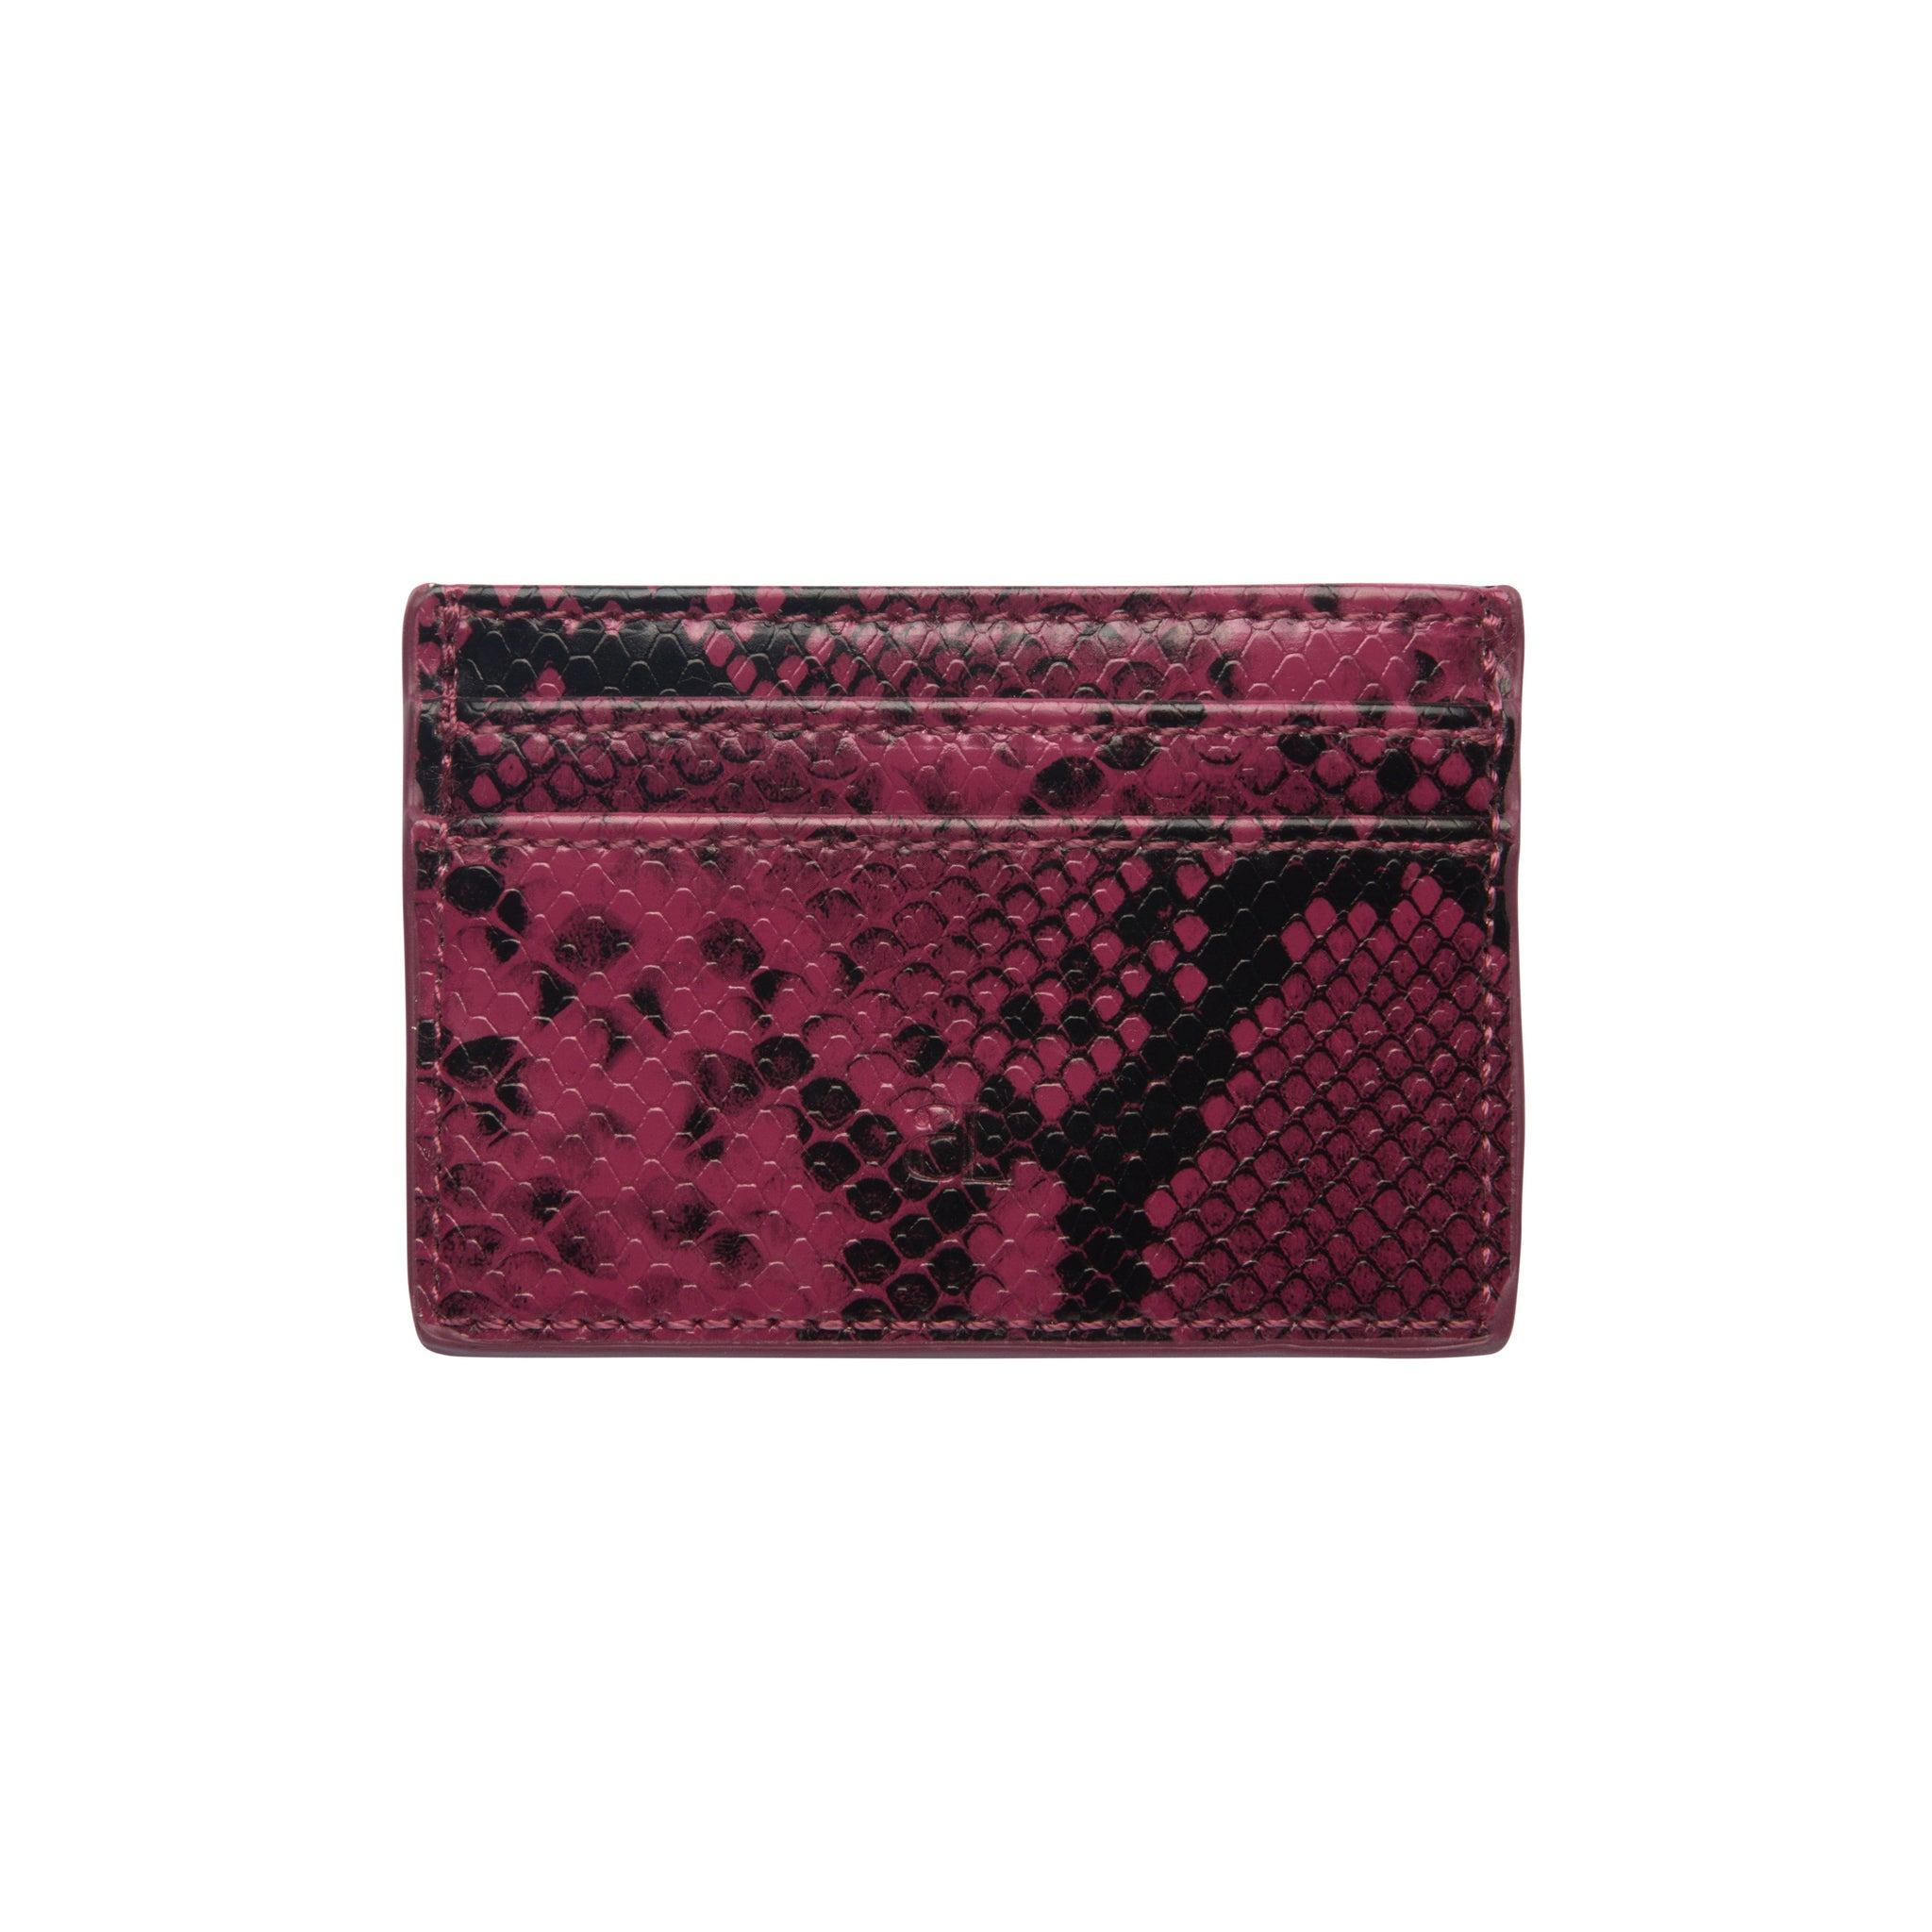 Magenta & Black Snakeskin Clea Card Holder